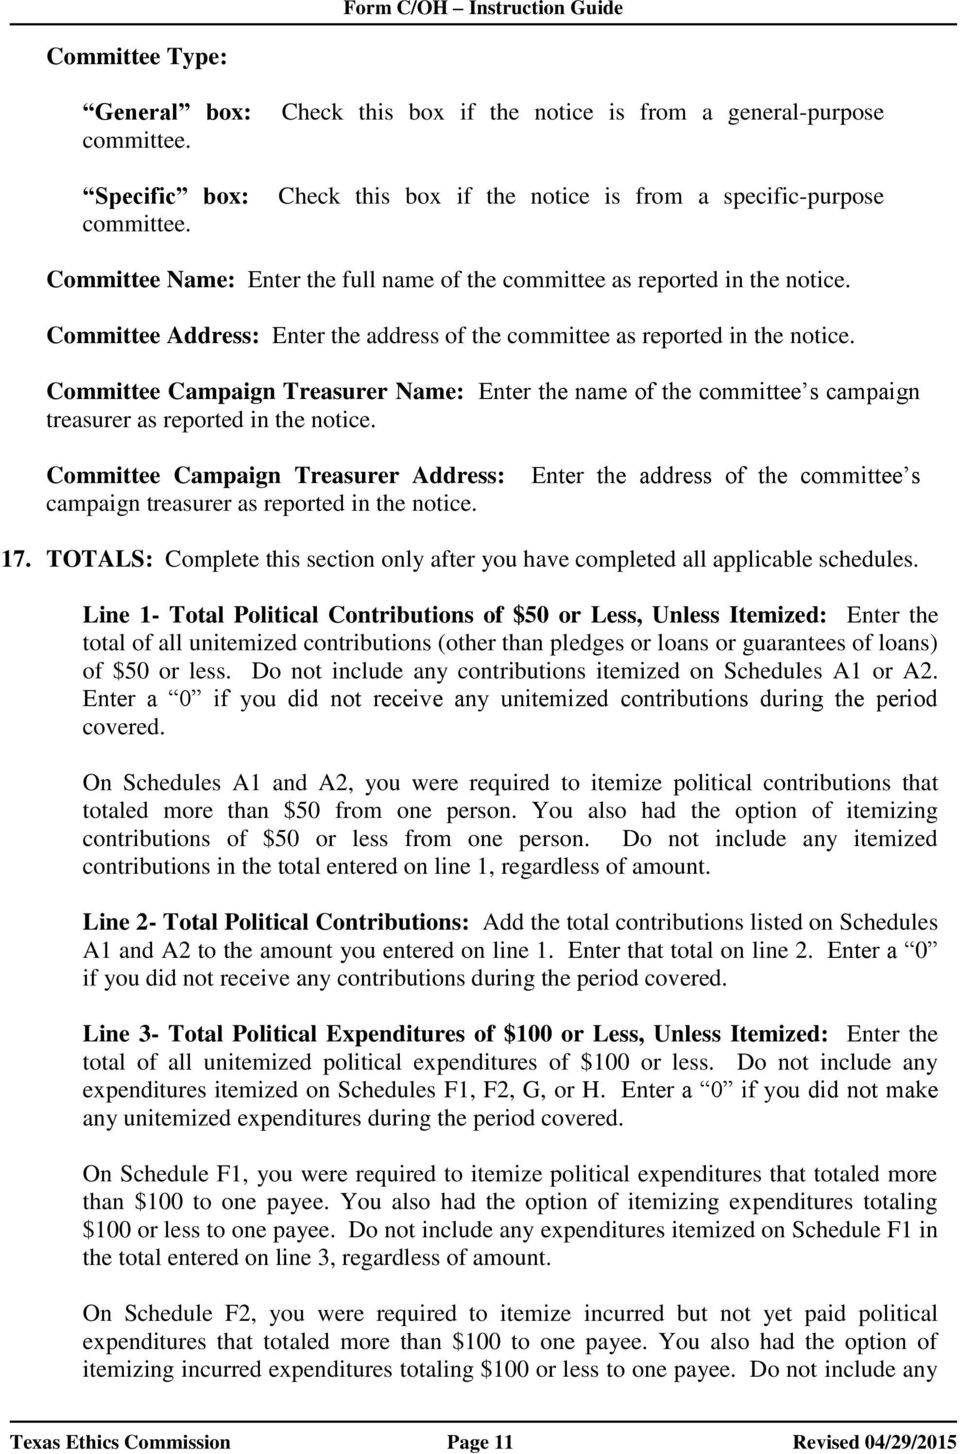 Committee Address: Enter the address of the committee as reported in the notice. Committee Campaign Treasurer Name: Enter the name of the committee s campaign treasurer as reported in the notice.